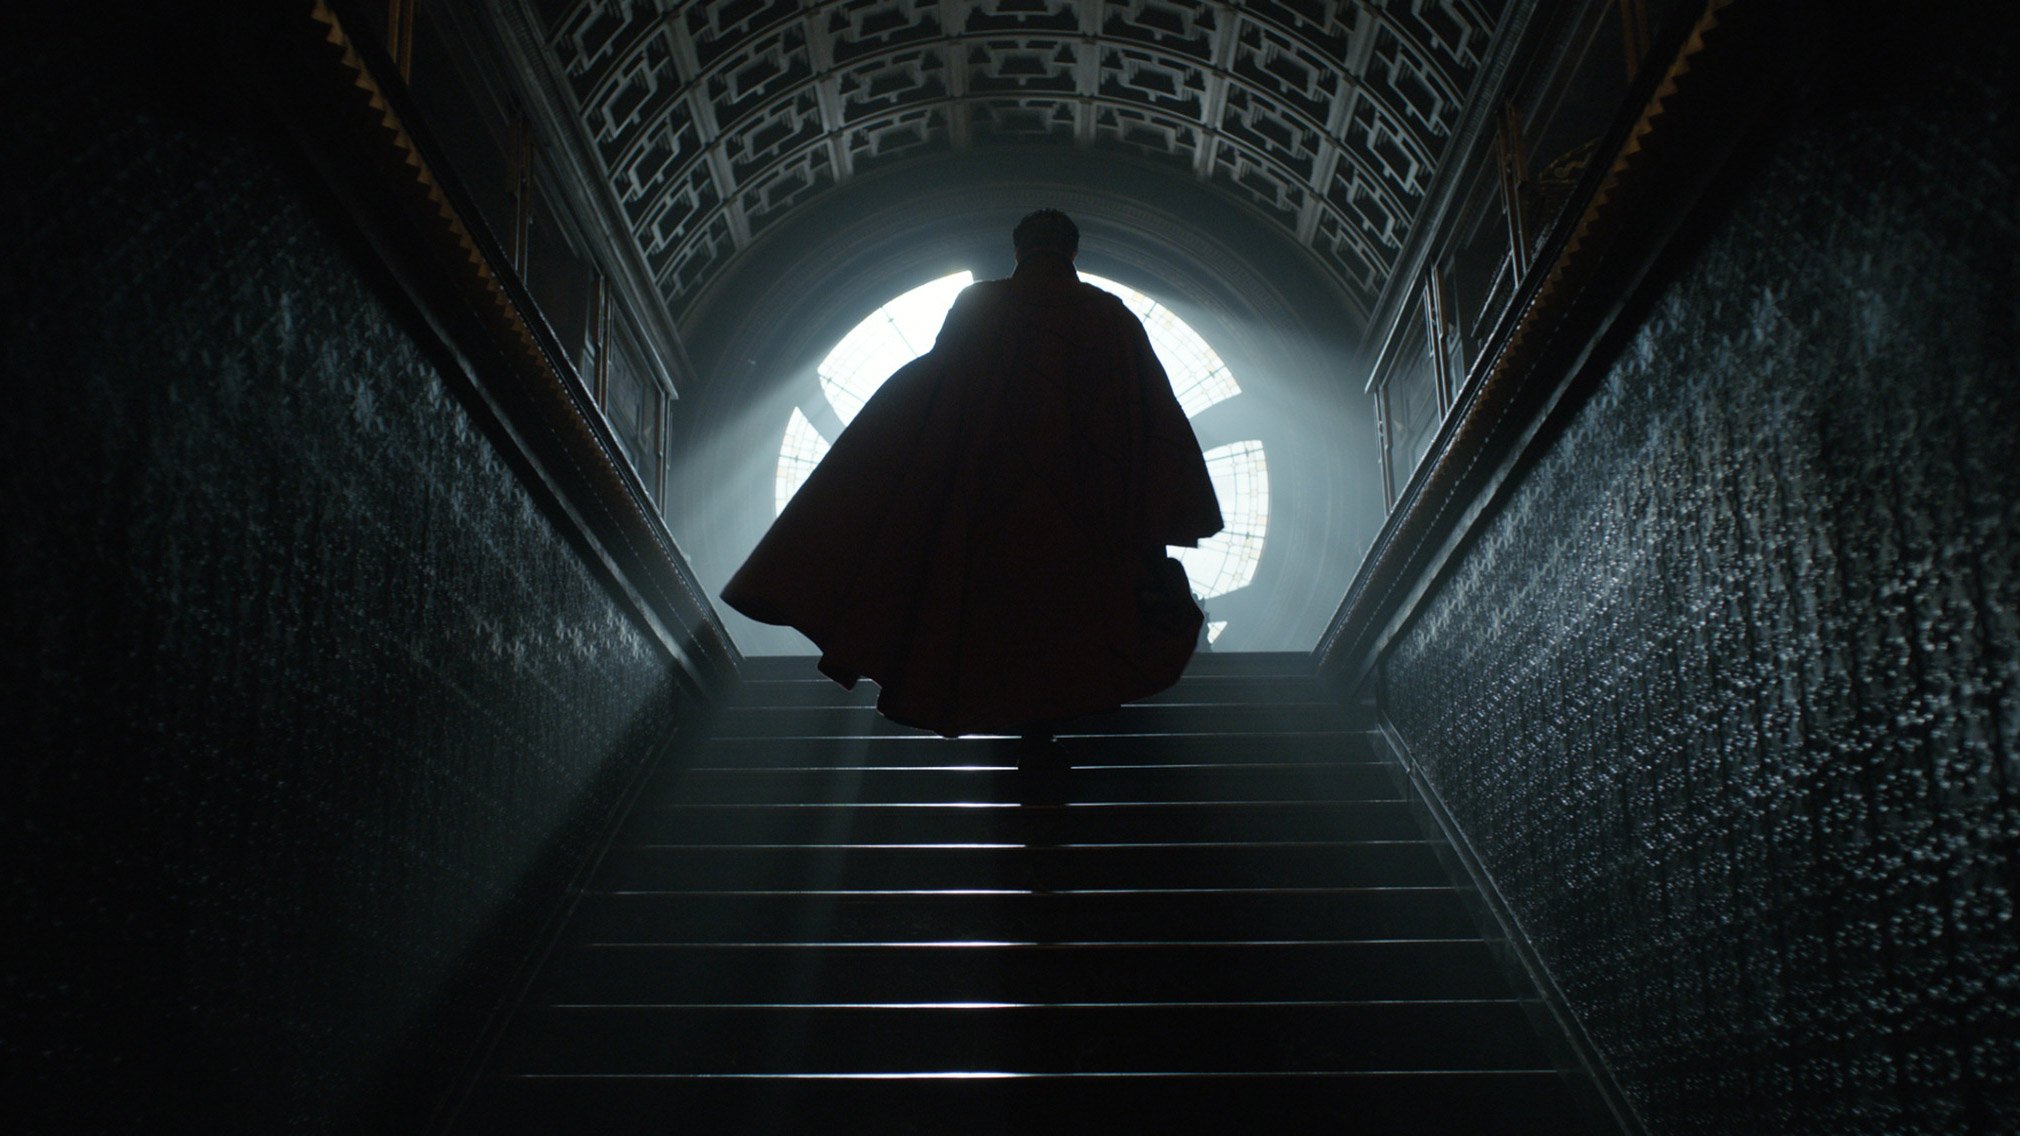 doctor strange 1080p, hd movies, 4k wallpapers, images, backgrounds